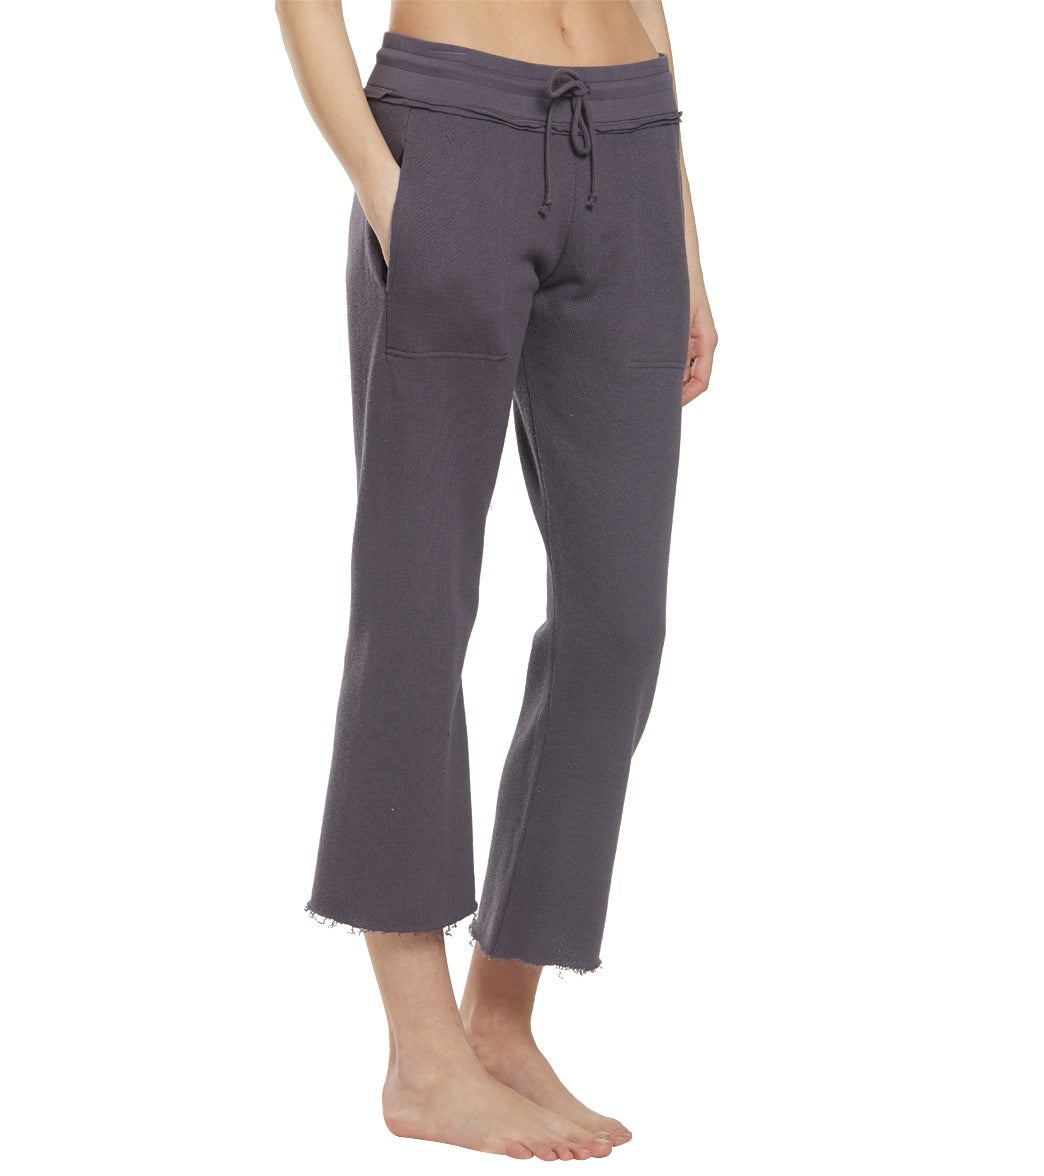 Free People Movement Reyes Jogger Pants - Graphite Cotton